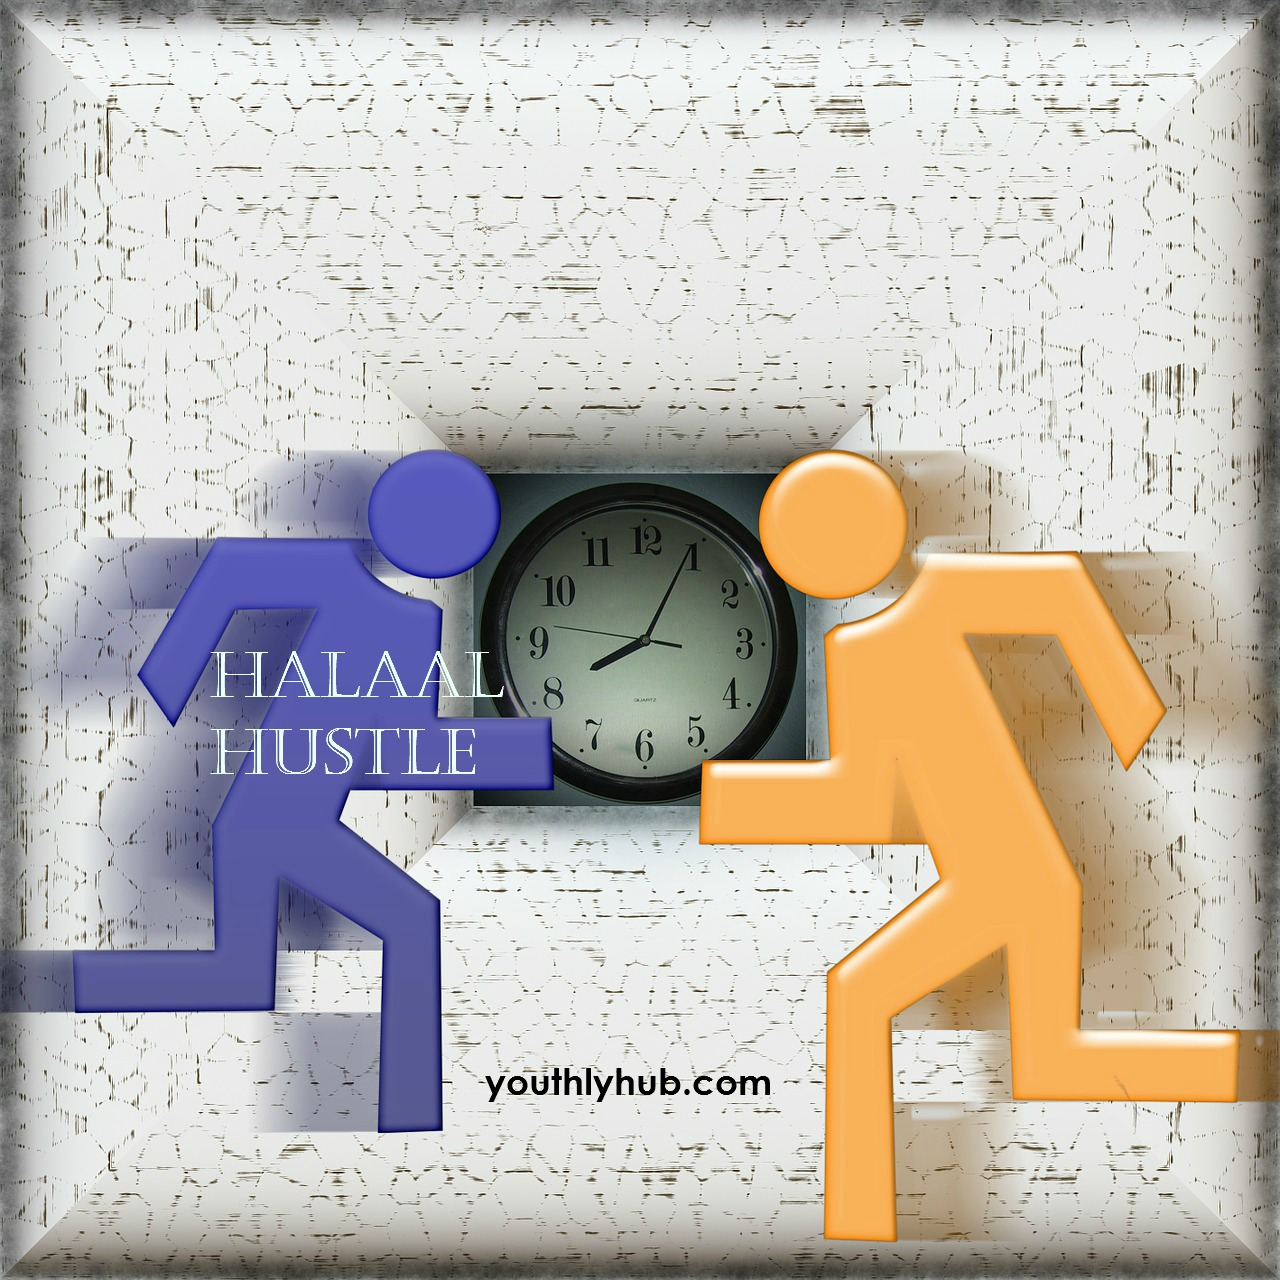 [Halaal Hustle – Part 1] Five Truths of Hustle